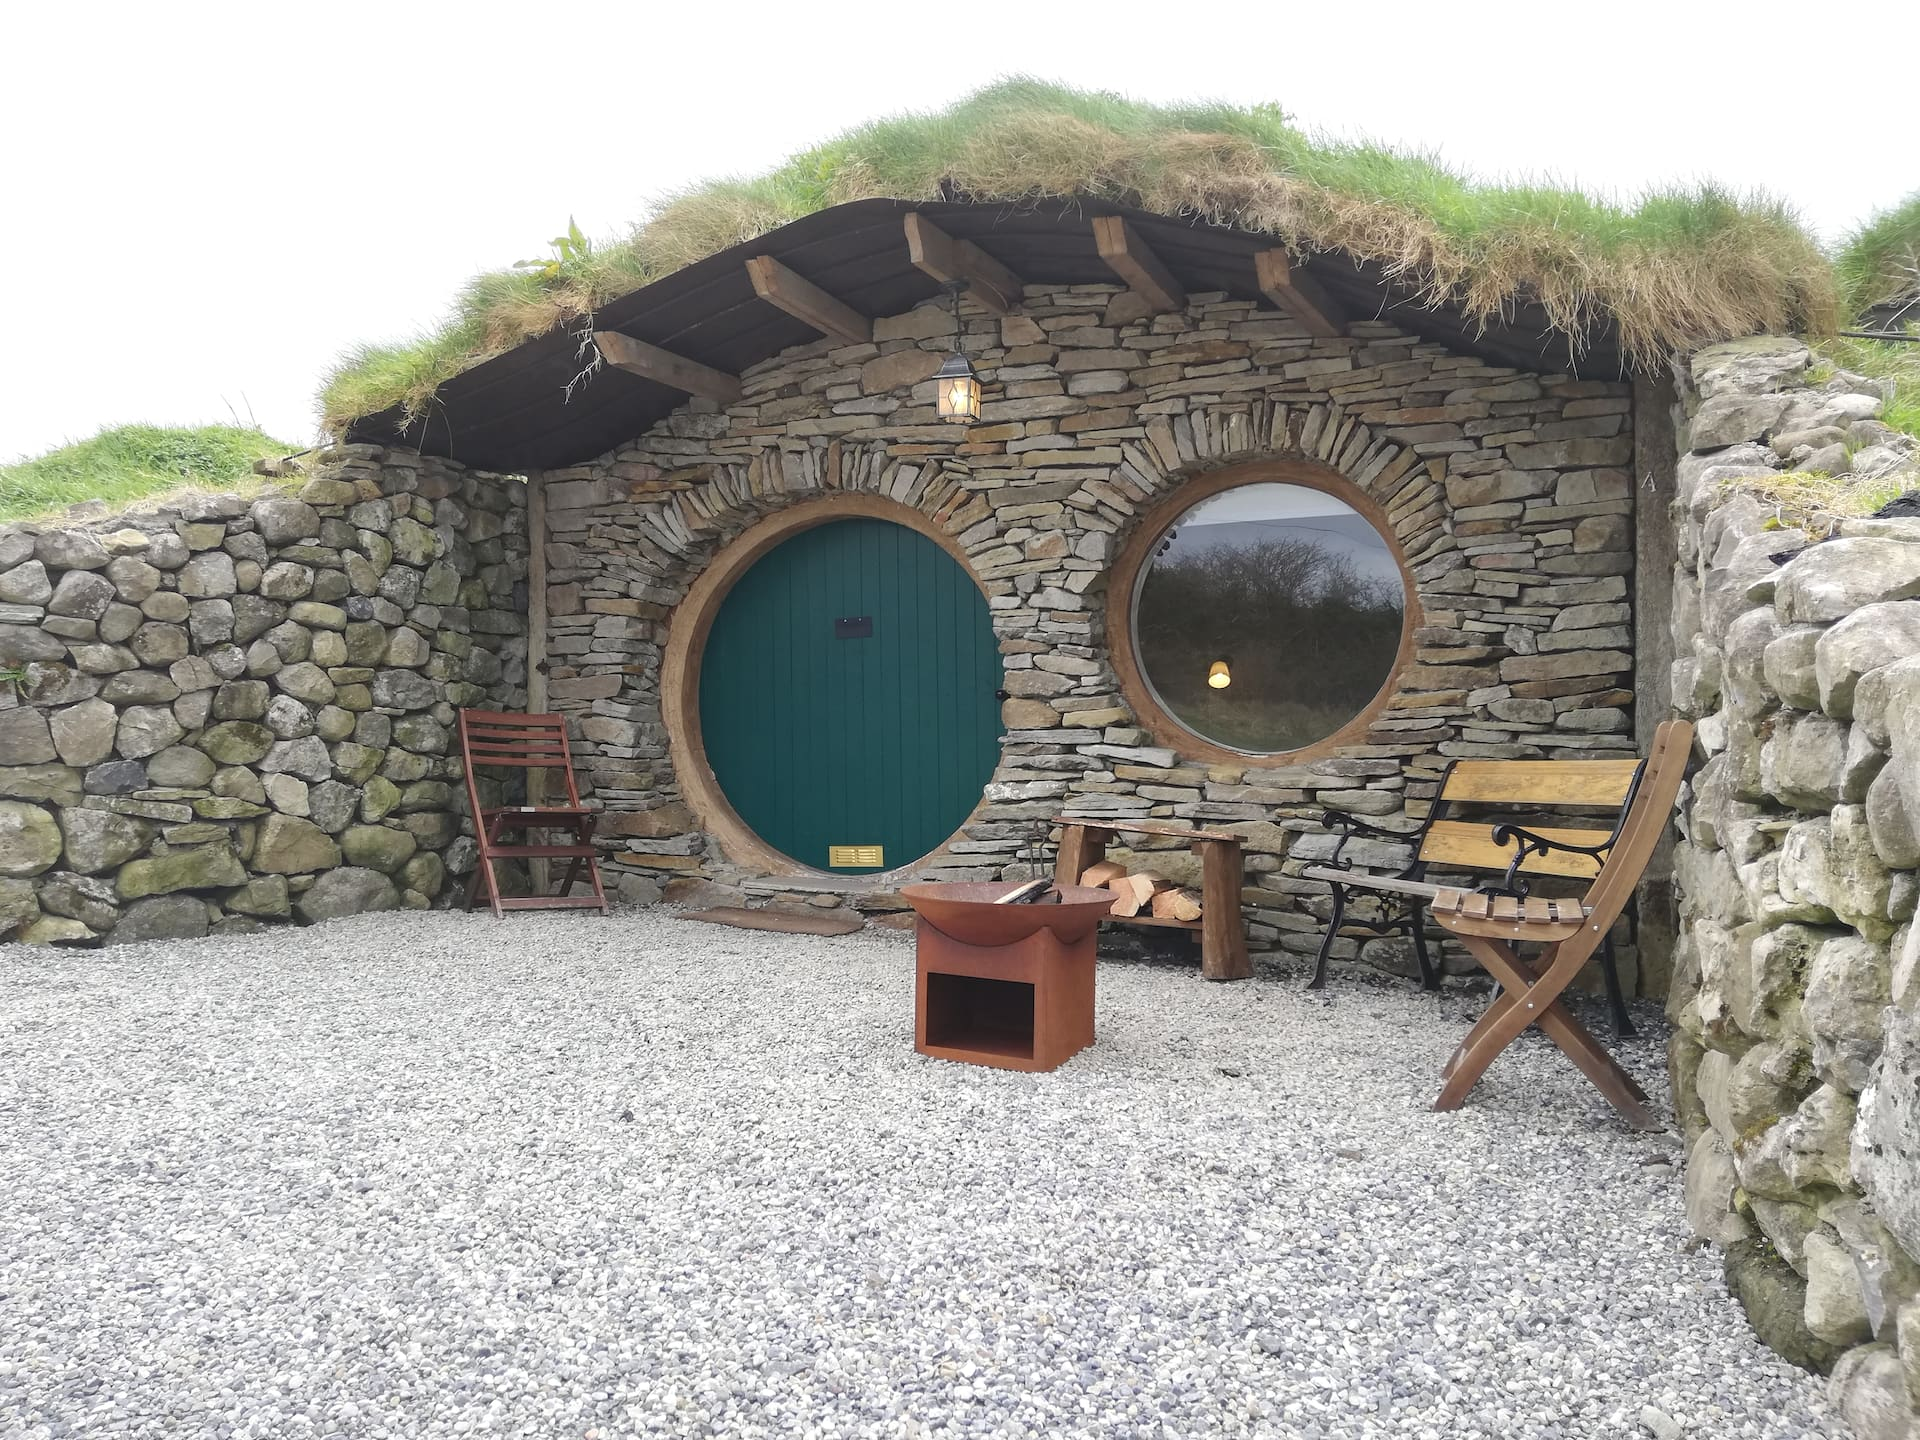 Mayo Glamping (Co. Mayo) - for a romantic getaway in a Hobbit hut